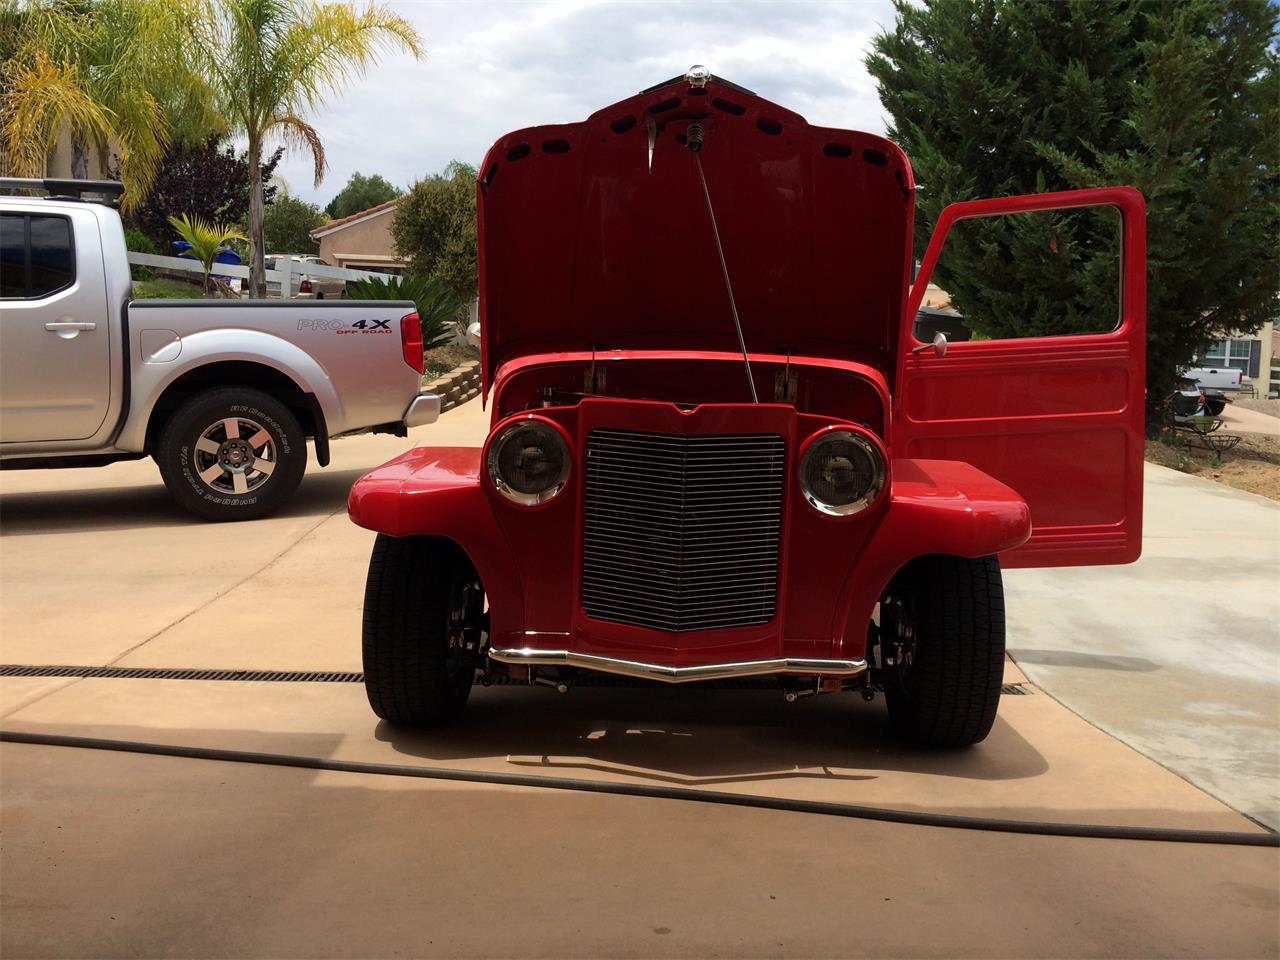 1951 Jeep Willys (CC-1387927) for sale in FALLBROOK, California